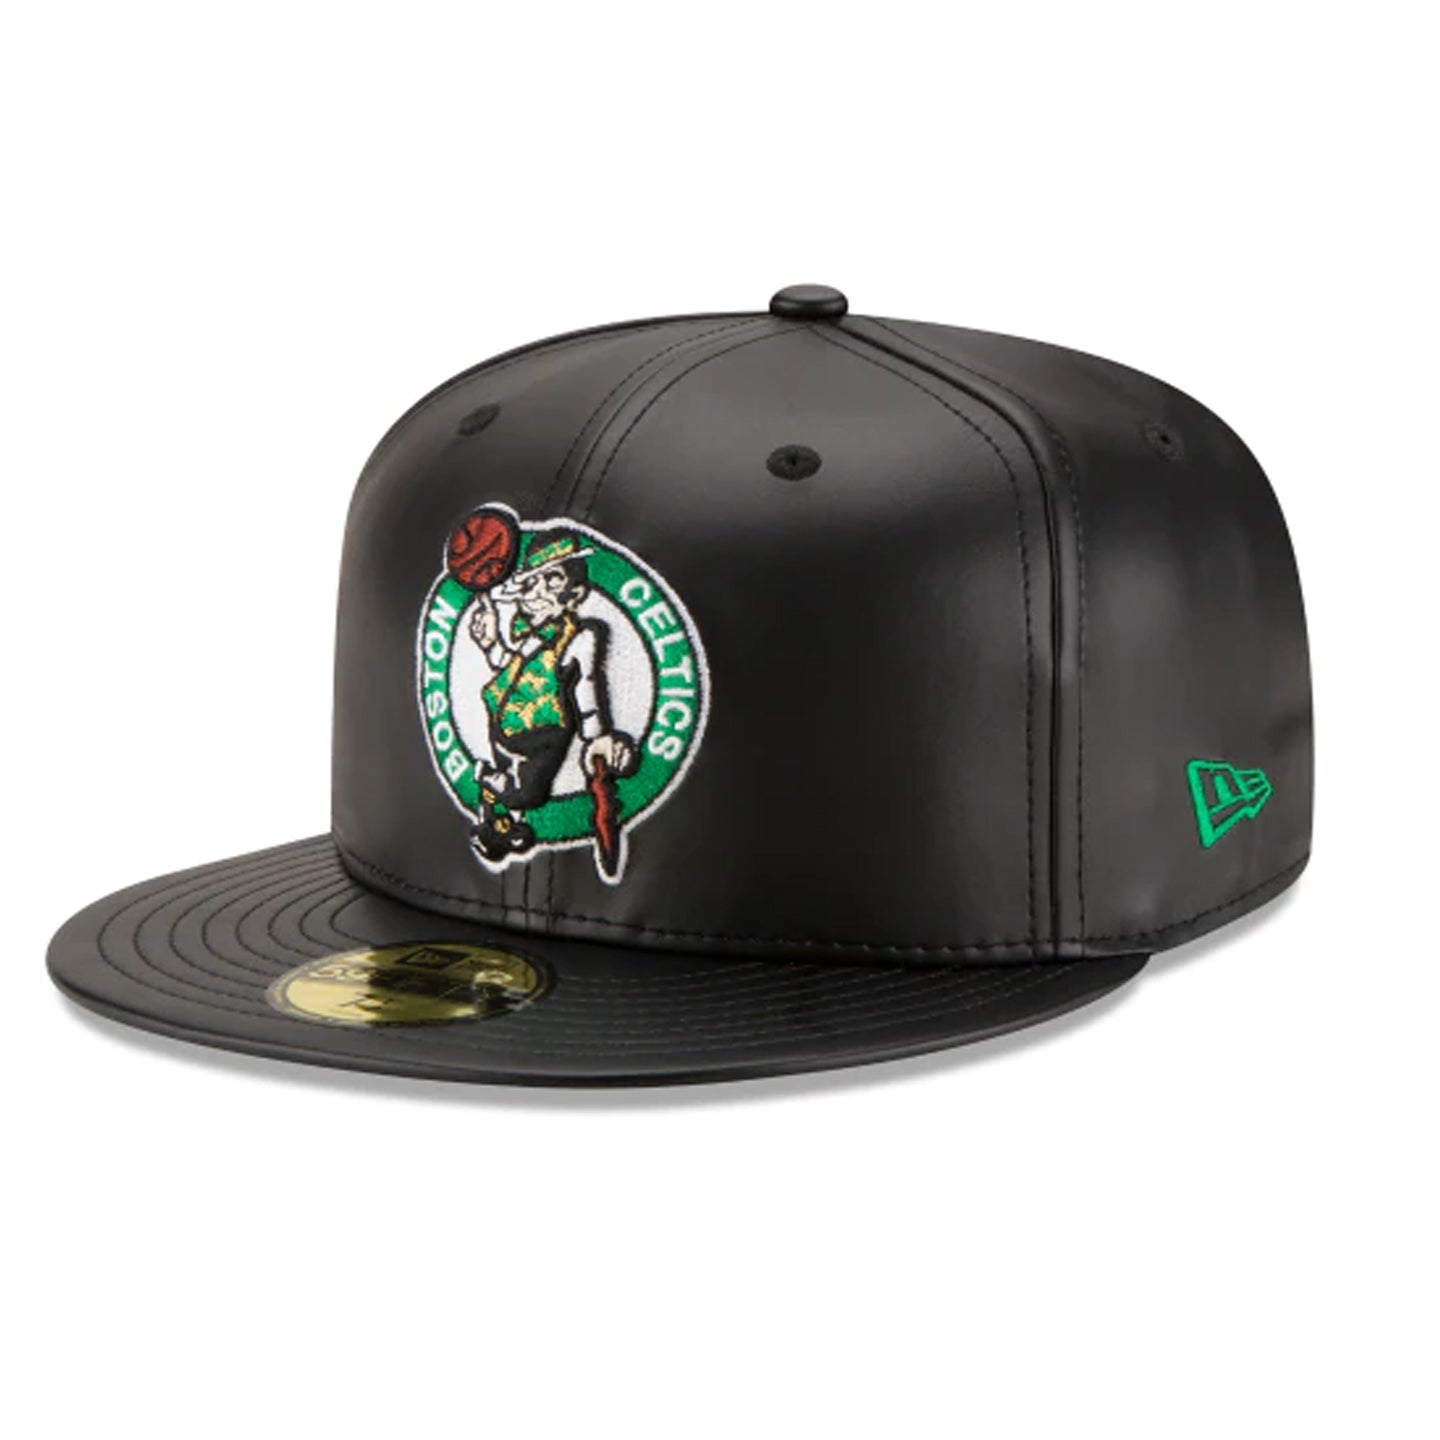 d0abeec90 Mitchell and Ness NBA Charlotte Hornets Beanie